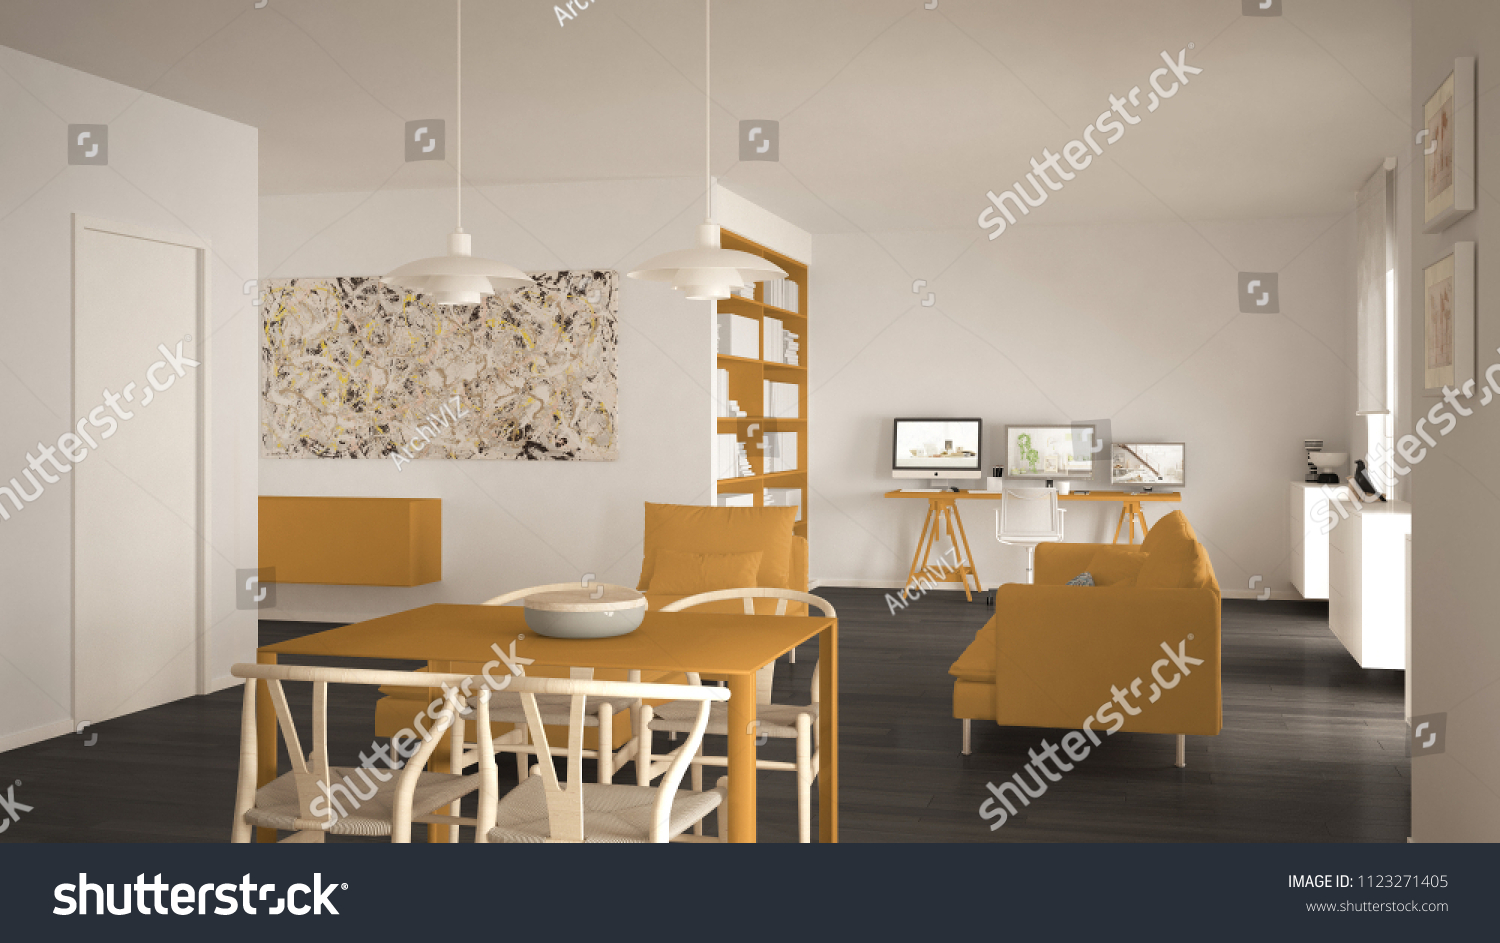 Minimalist Living Space Nordic Minimalist Living Room Open Space Stock Illustration